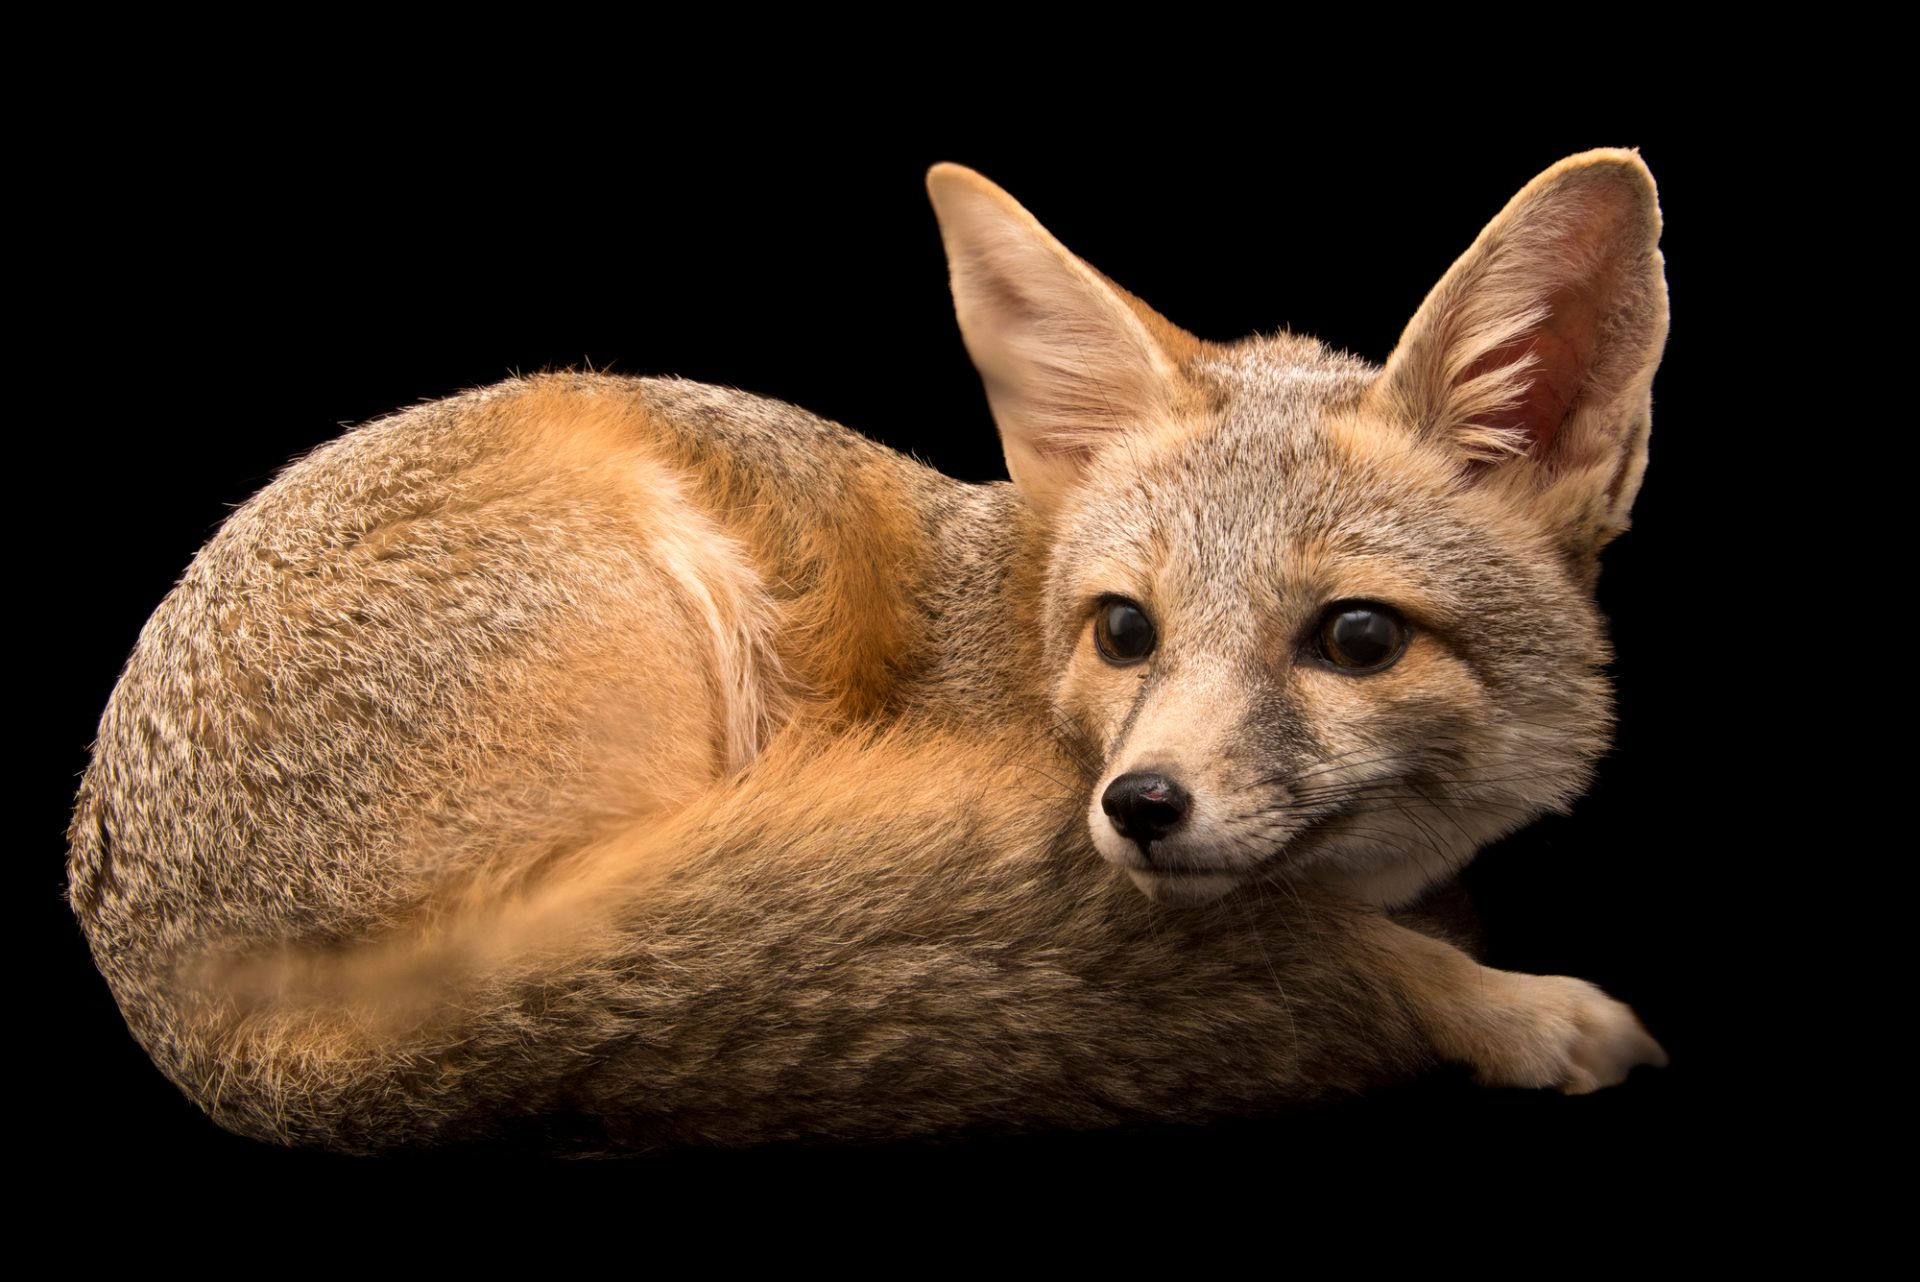 Arizona kit fox (Vulpes macrotis arizonensis) at Southwest Wildlife Conservation Center.